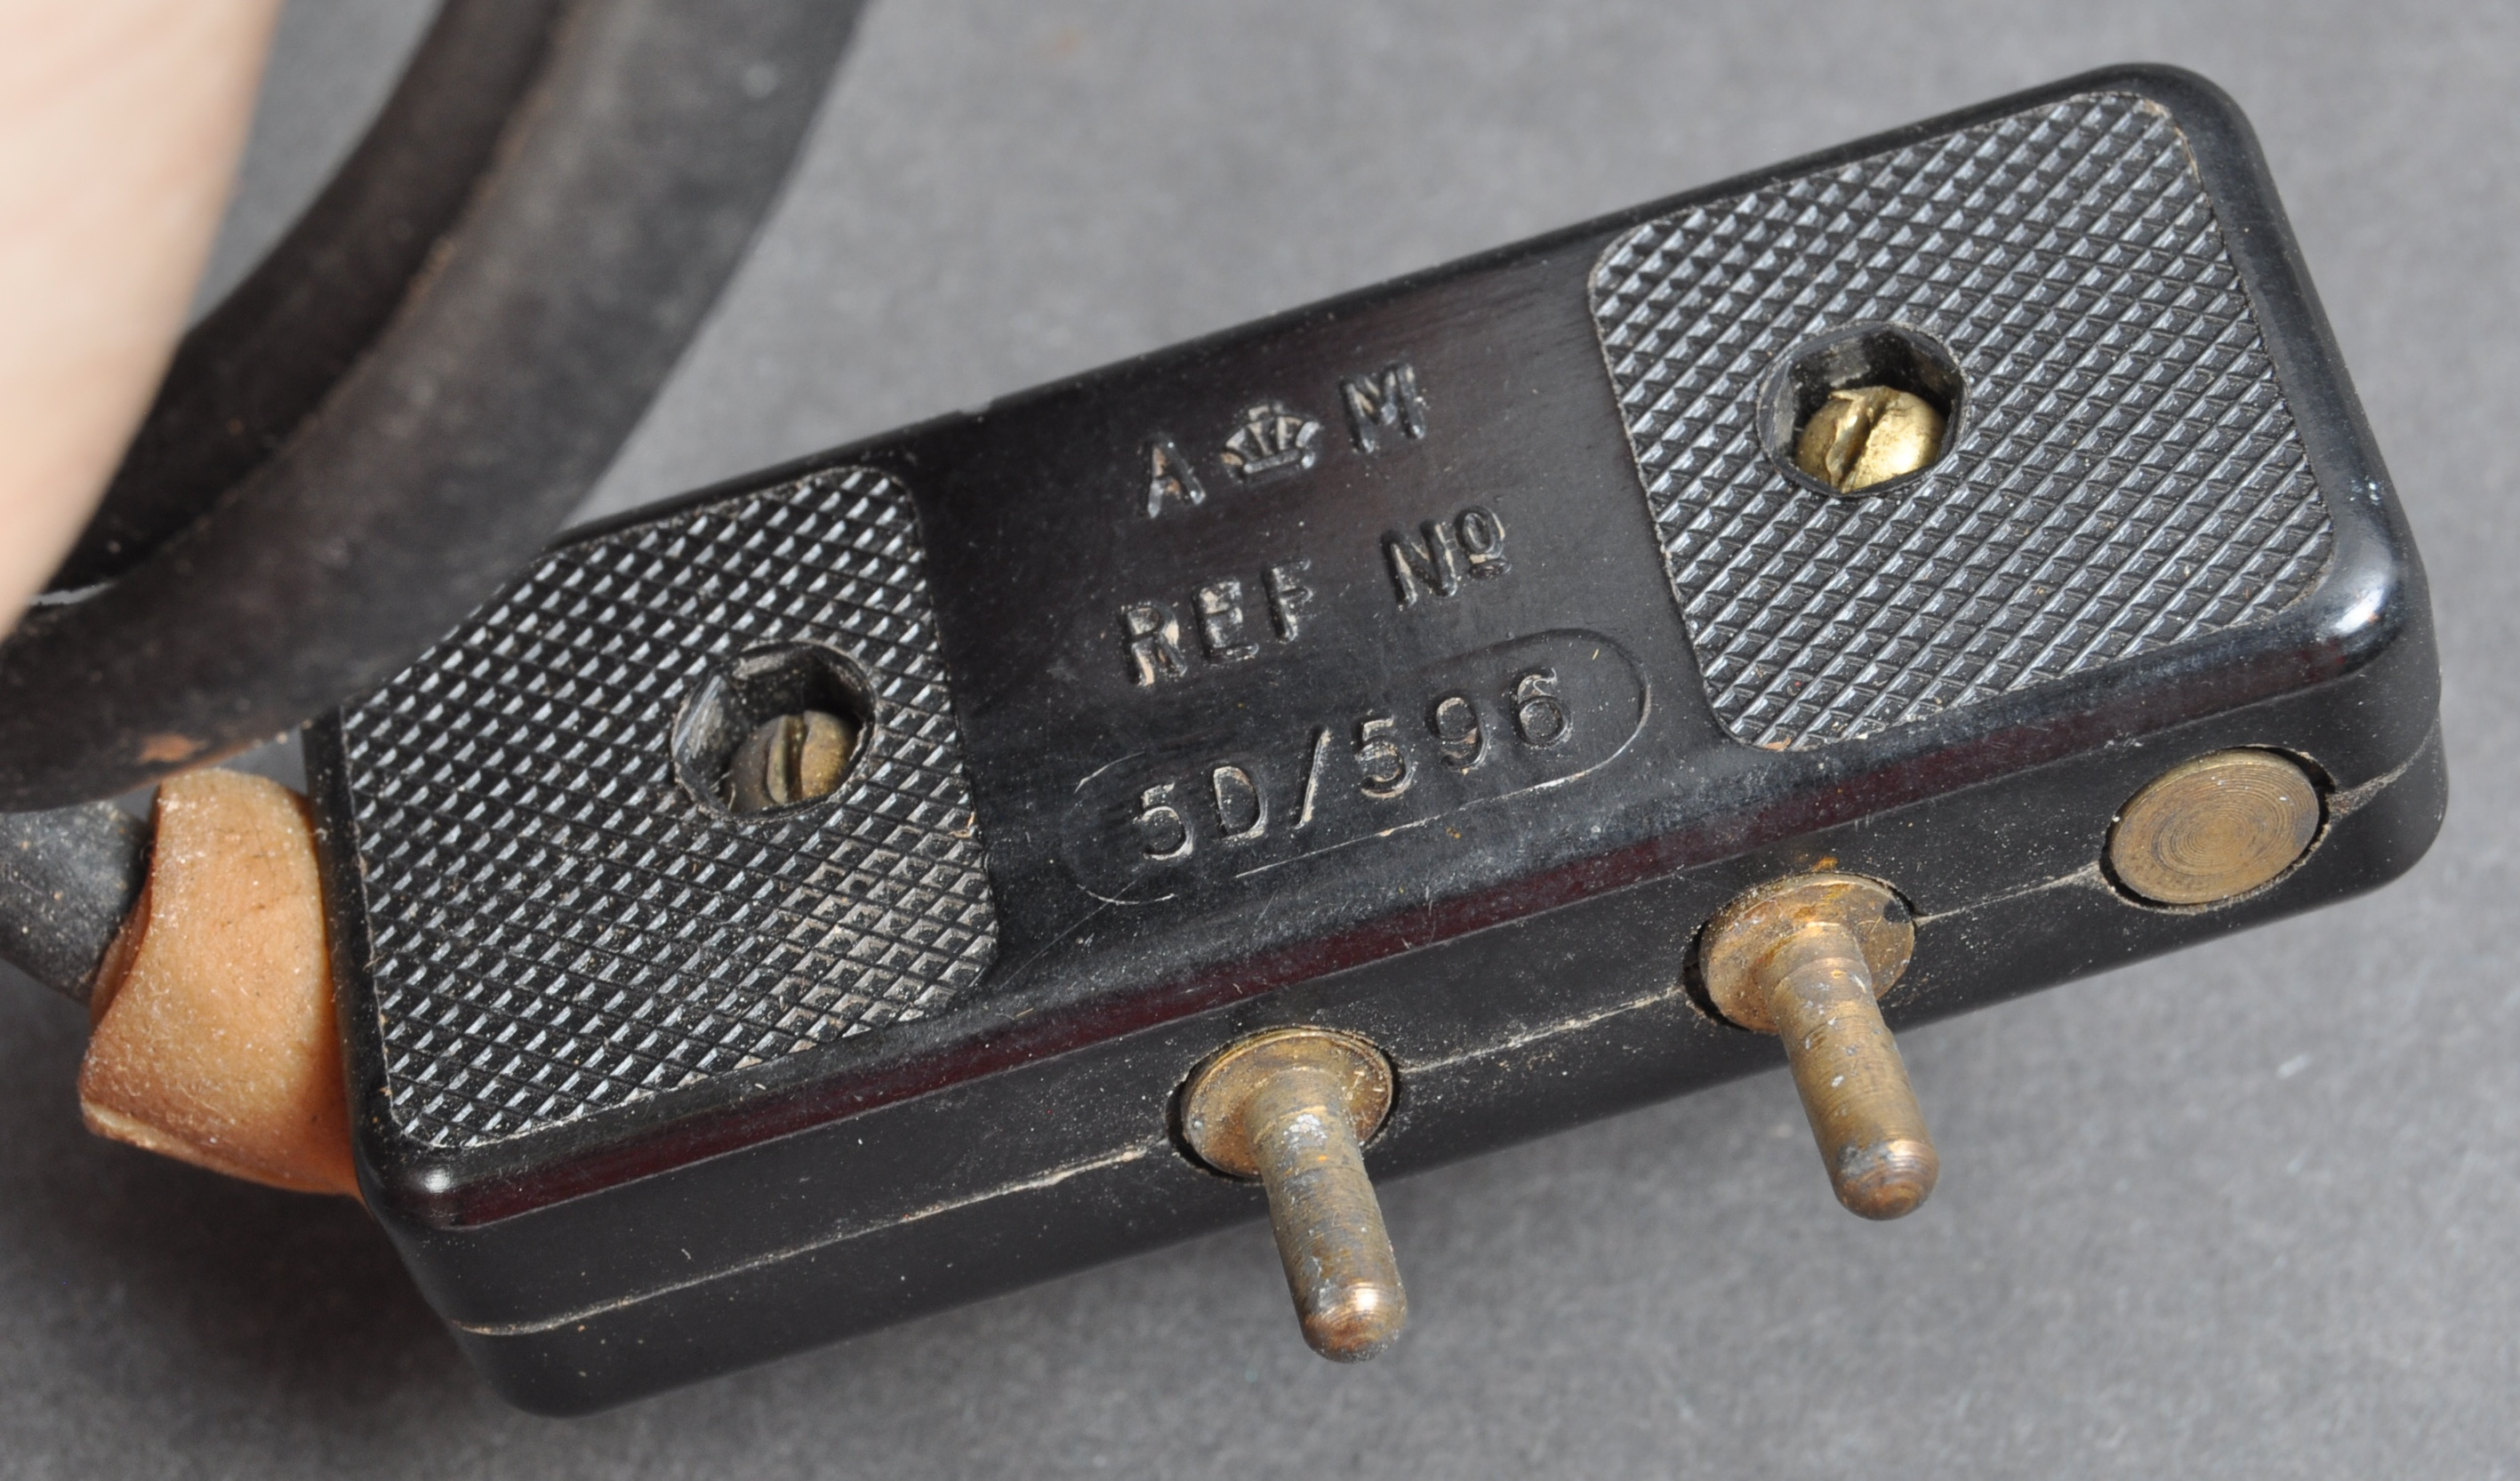 DAMBUSTERS - RARE SIGNED ORIGINAL RAF BOMB RELEASE SWITCH - Image 3 of 4